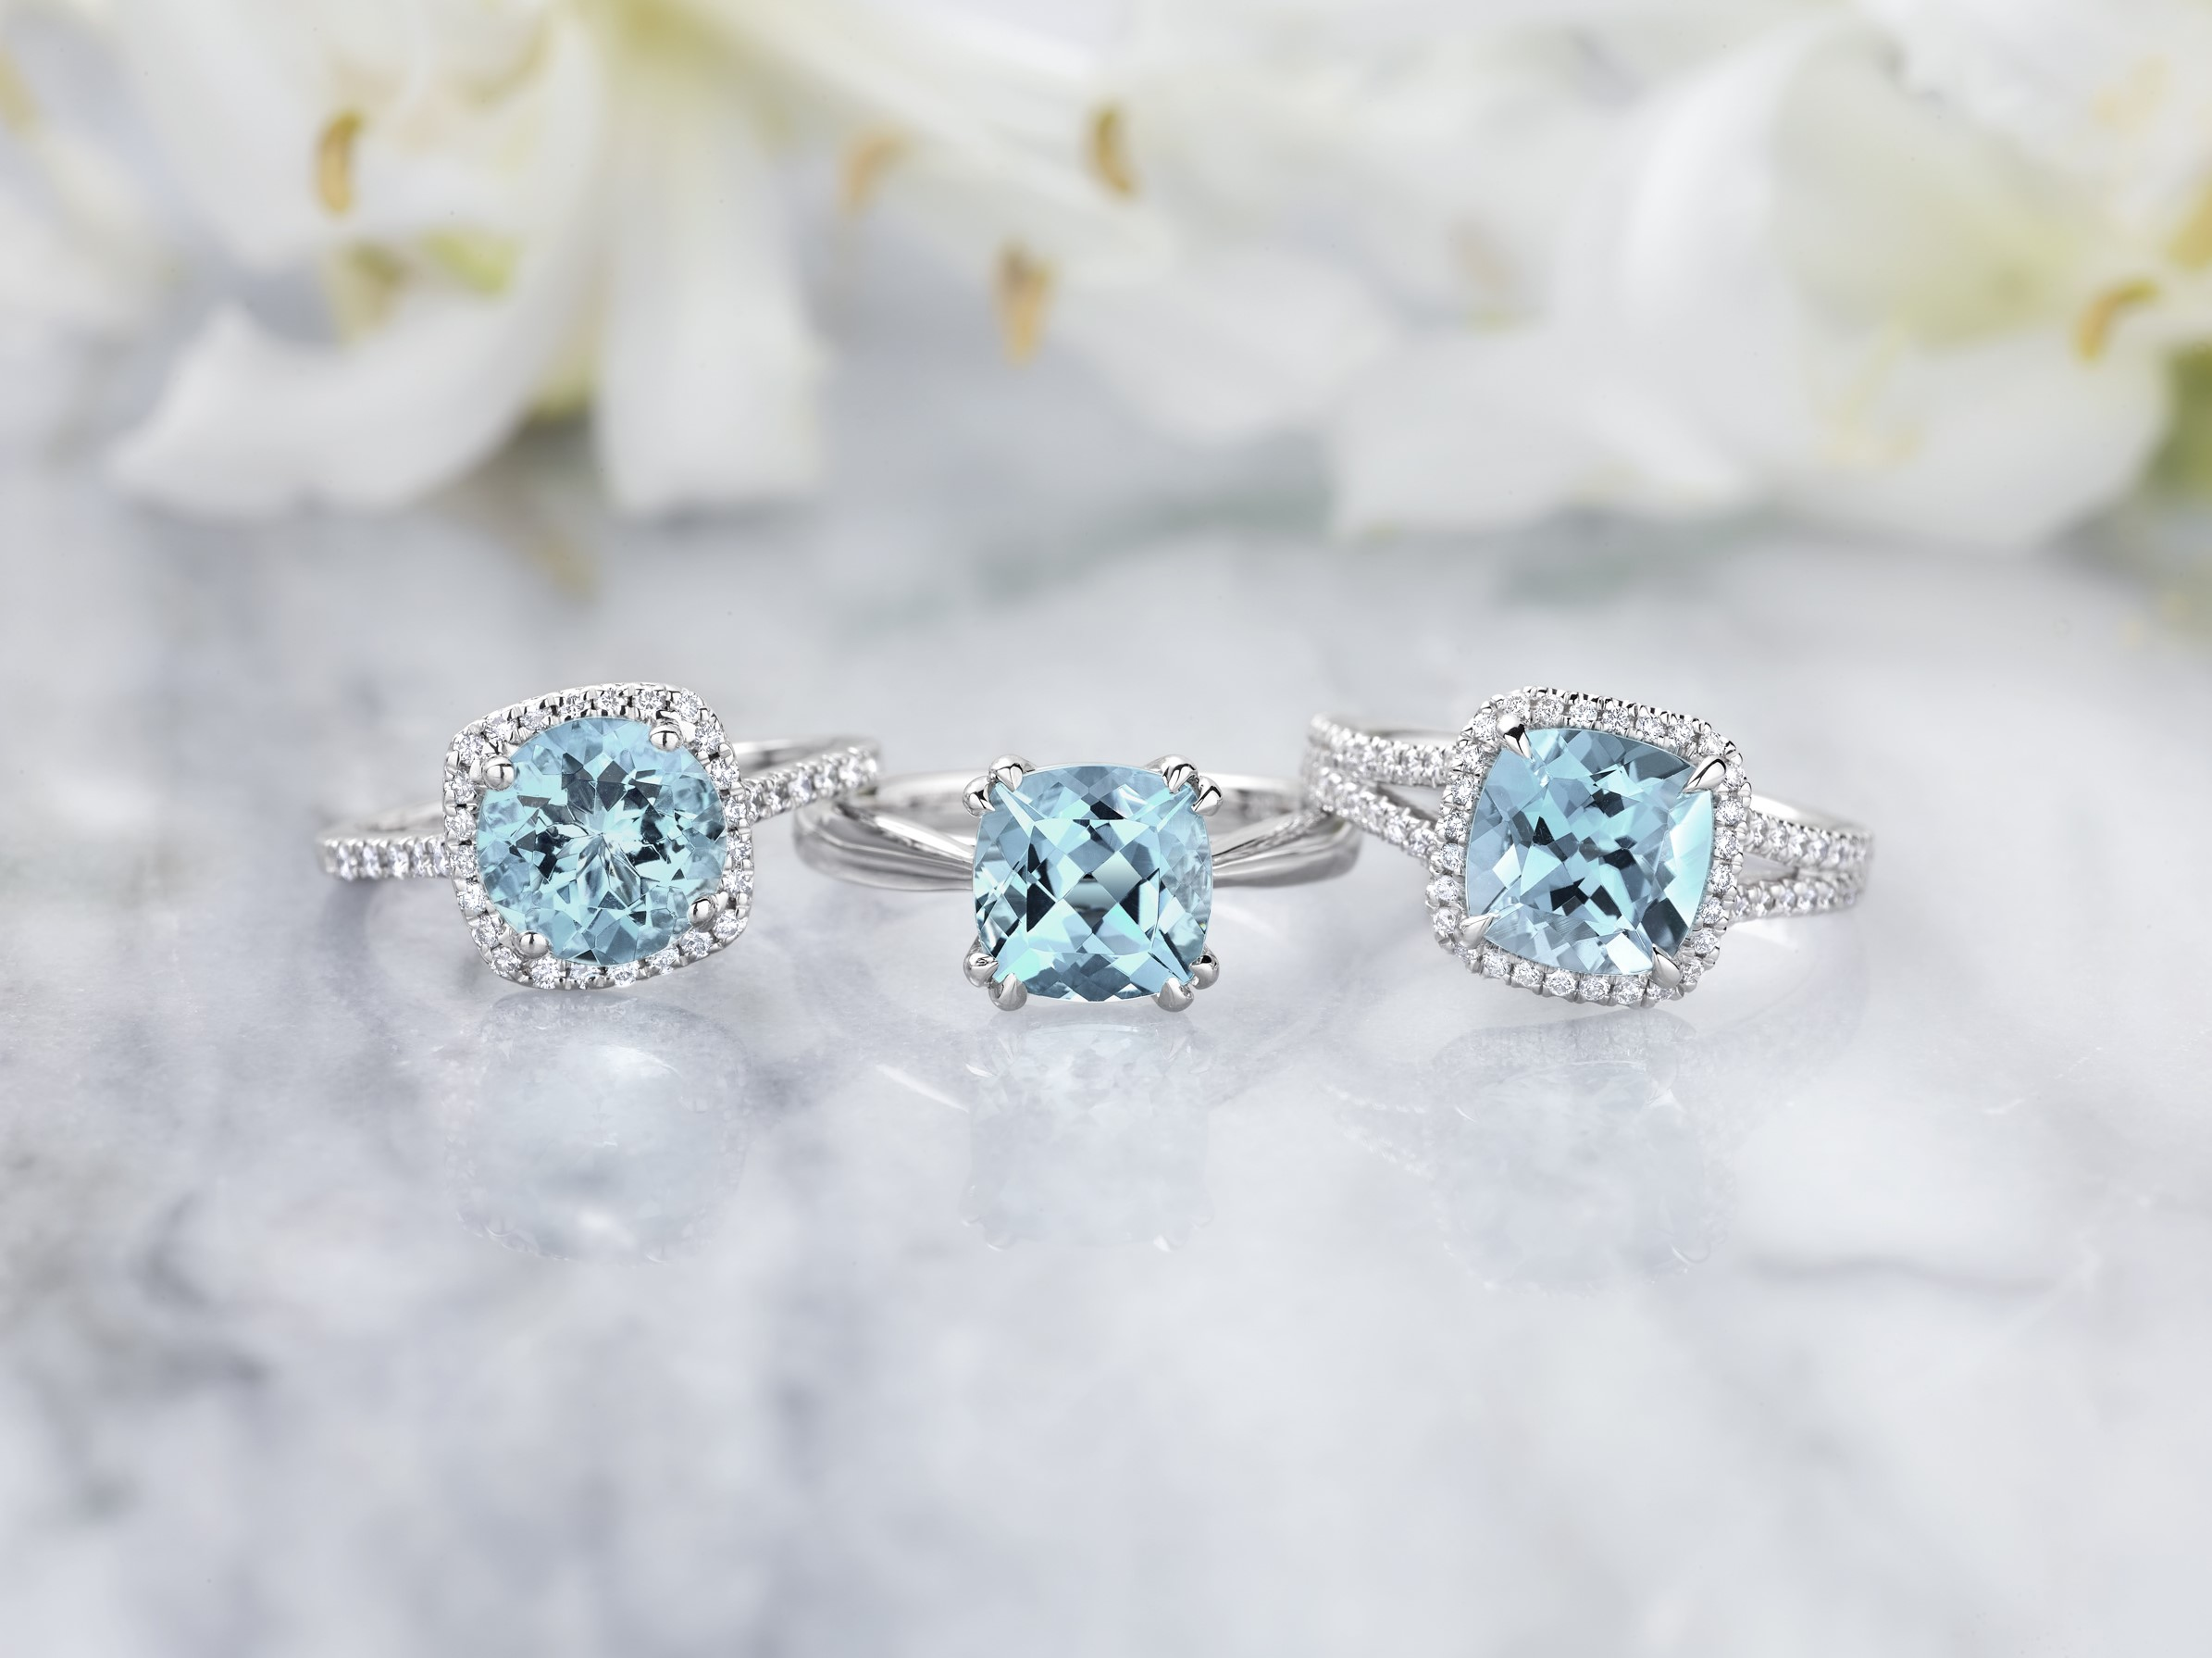 diamond engagement rings women product aquamarine real for band blue gold natural solid gems white jinjiantrade birthstone march ring from wedding